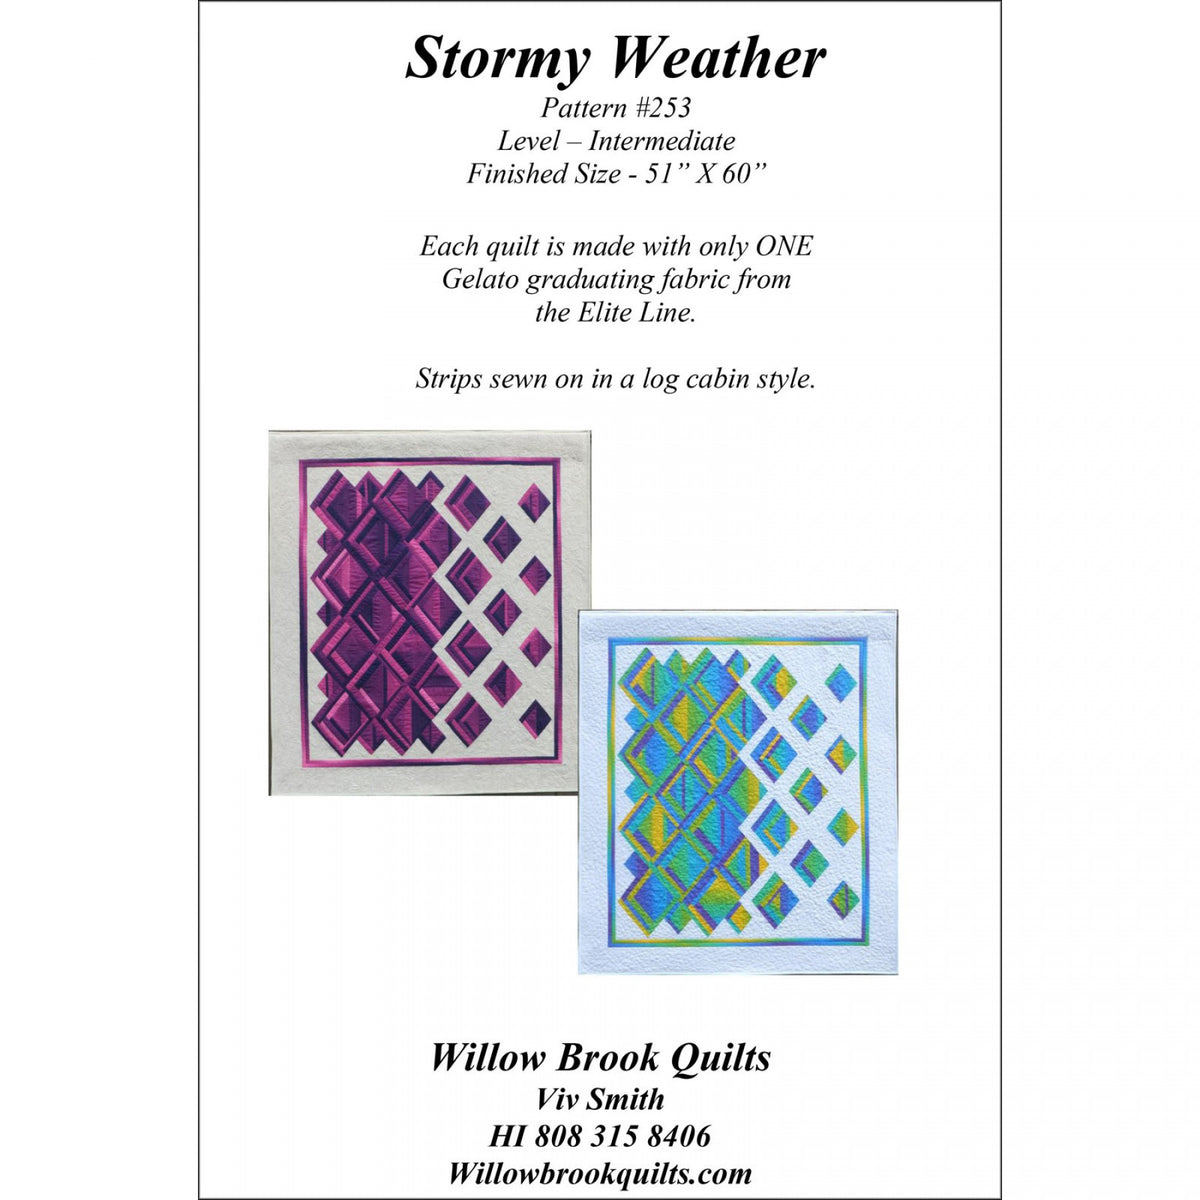 Stormy Weather - Bouledogue Quilt Co.